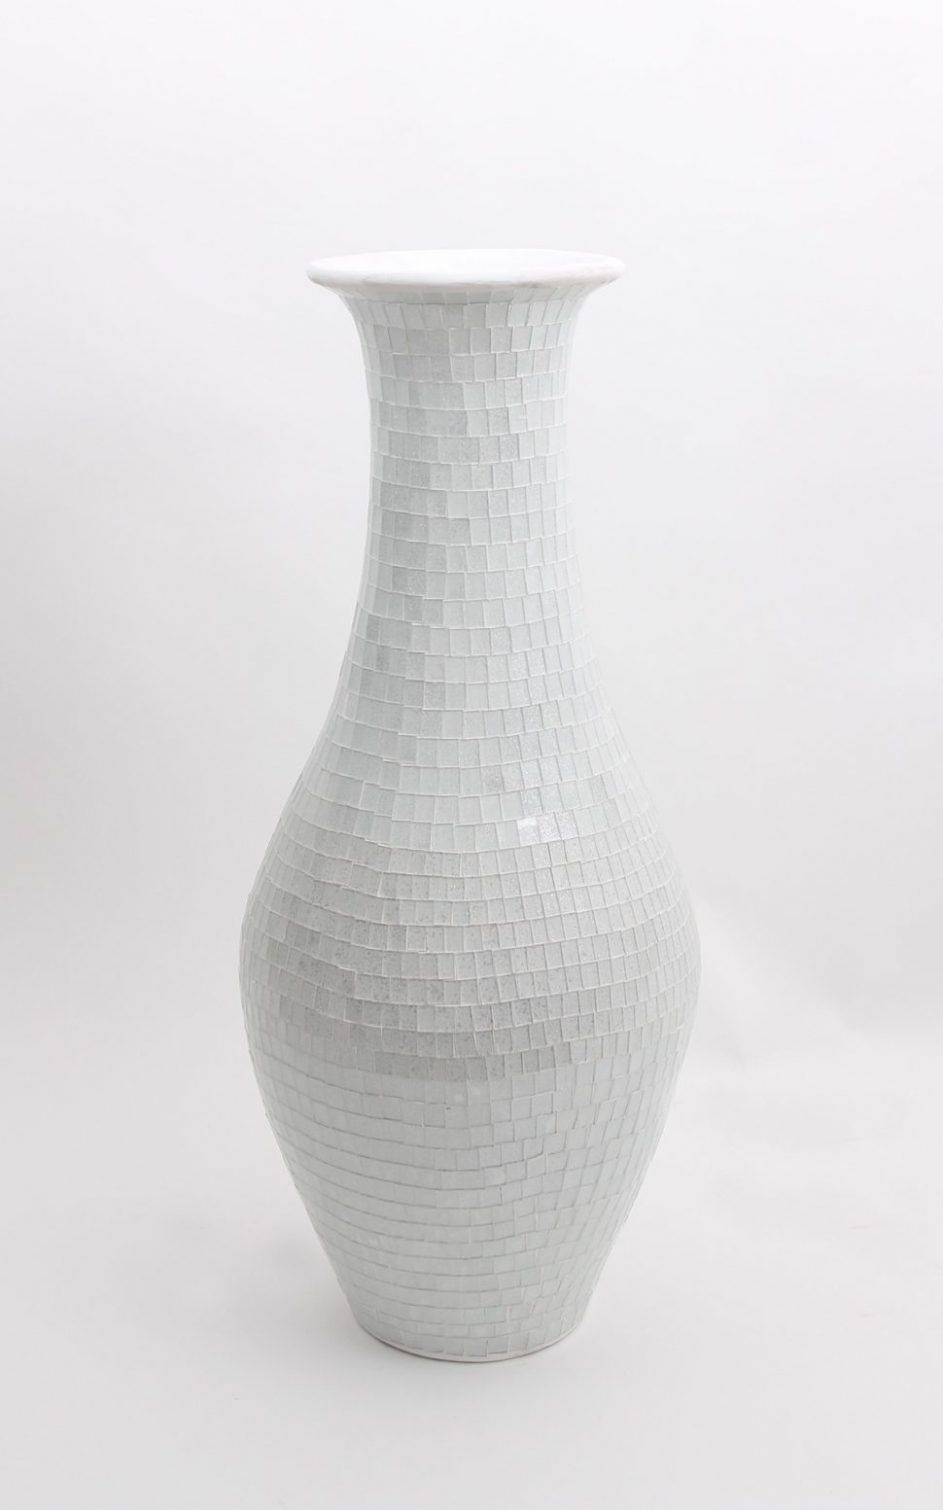 Superb Tall White Vases 122 Tall White Vases Australia Large intended for size 943 X 1510